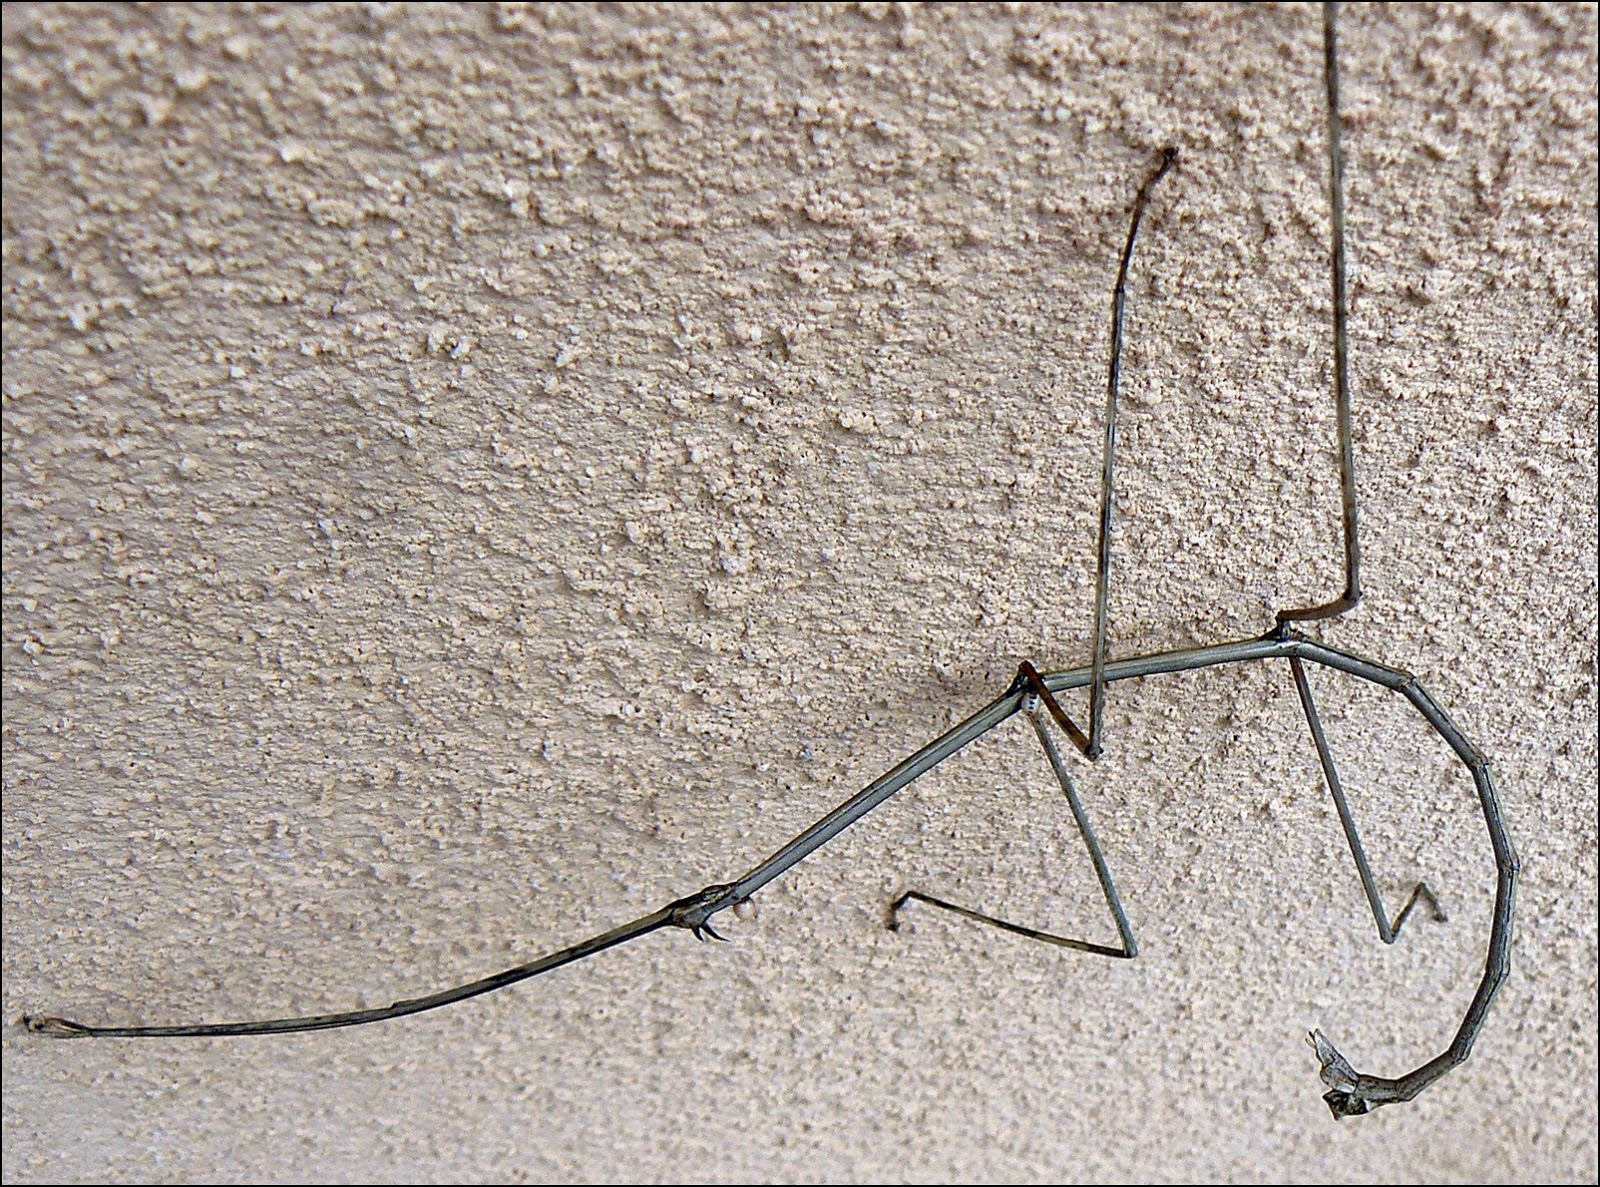 closeup of costa rican stick insect